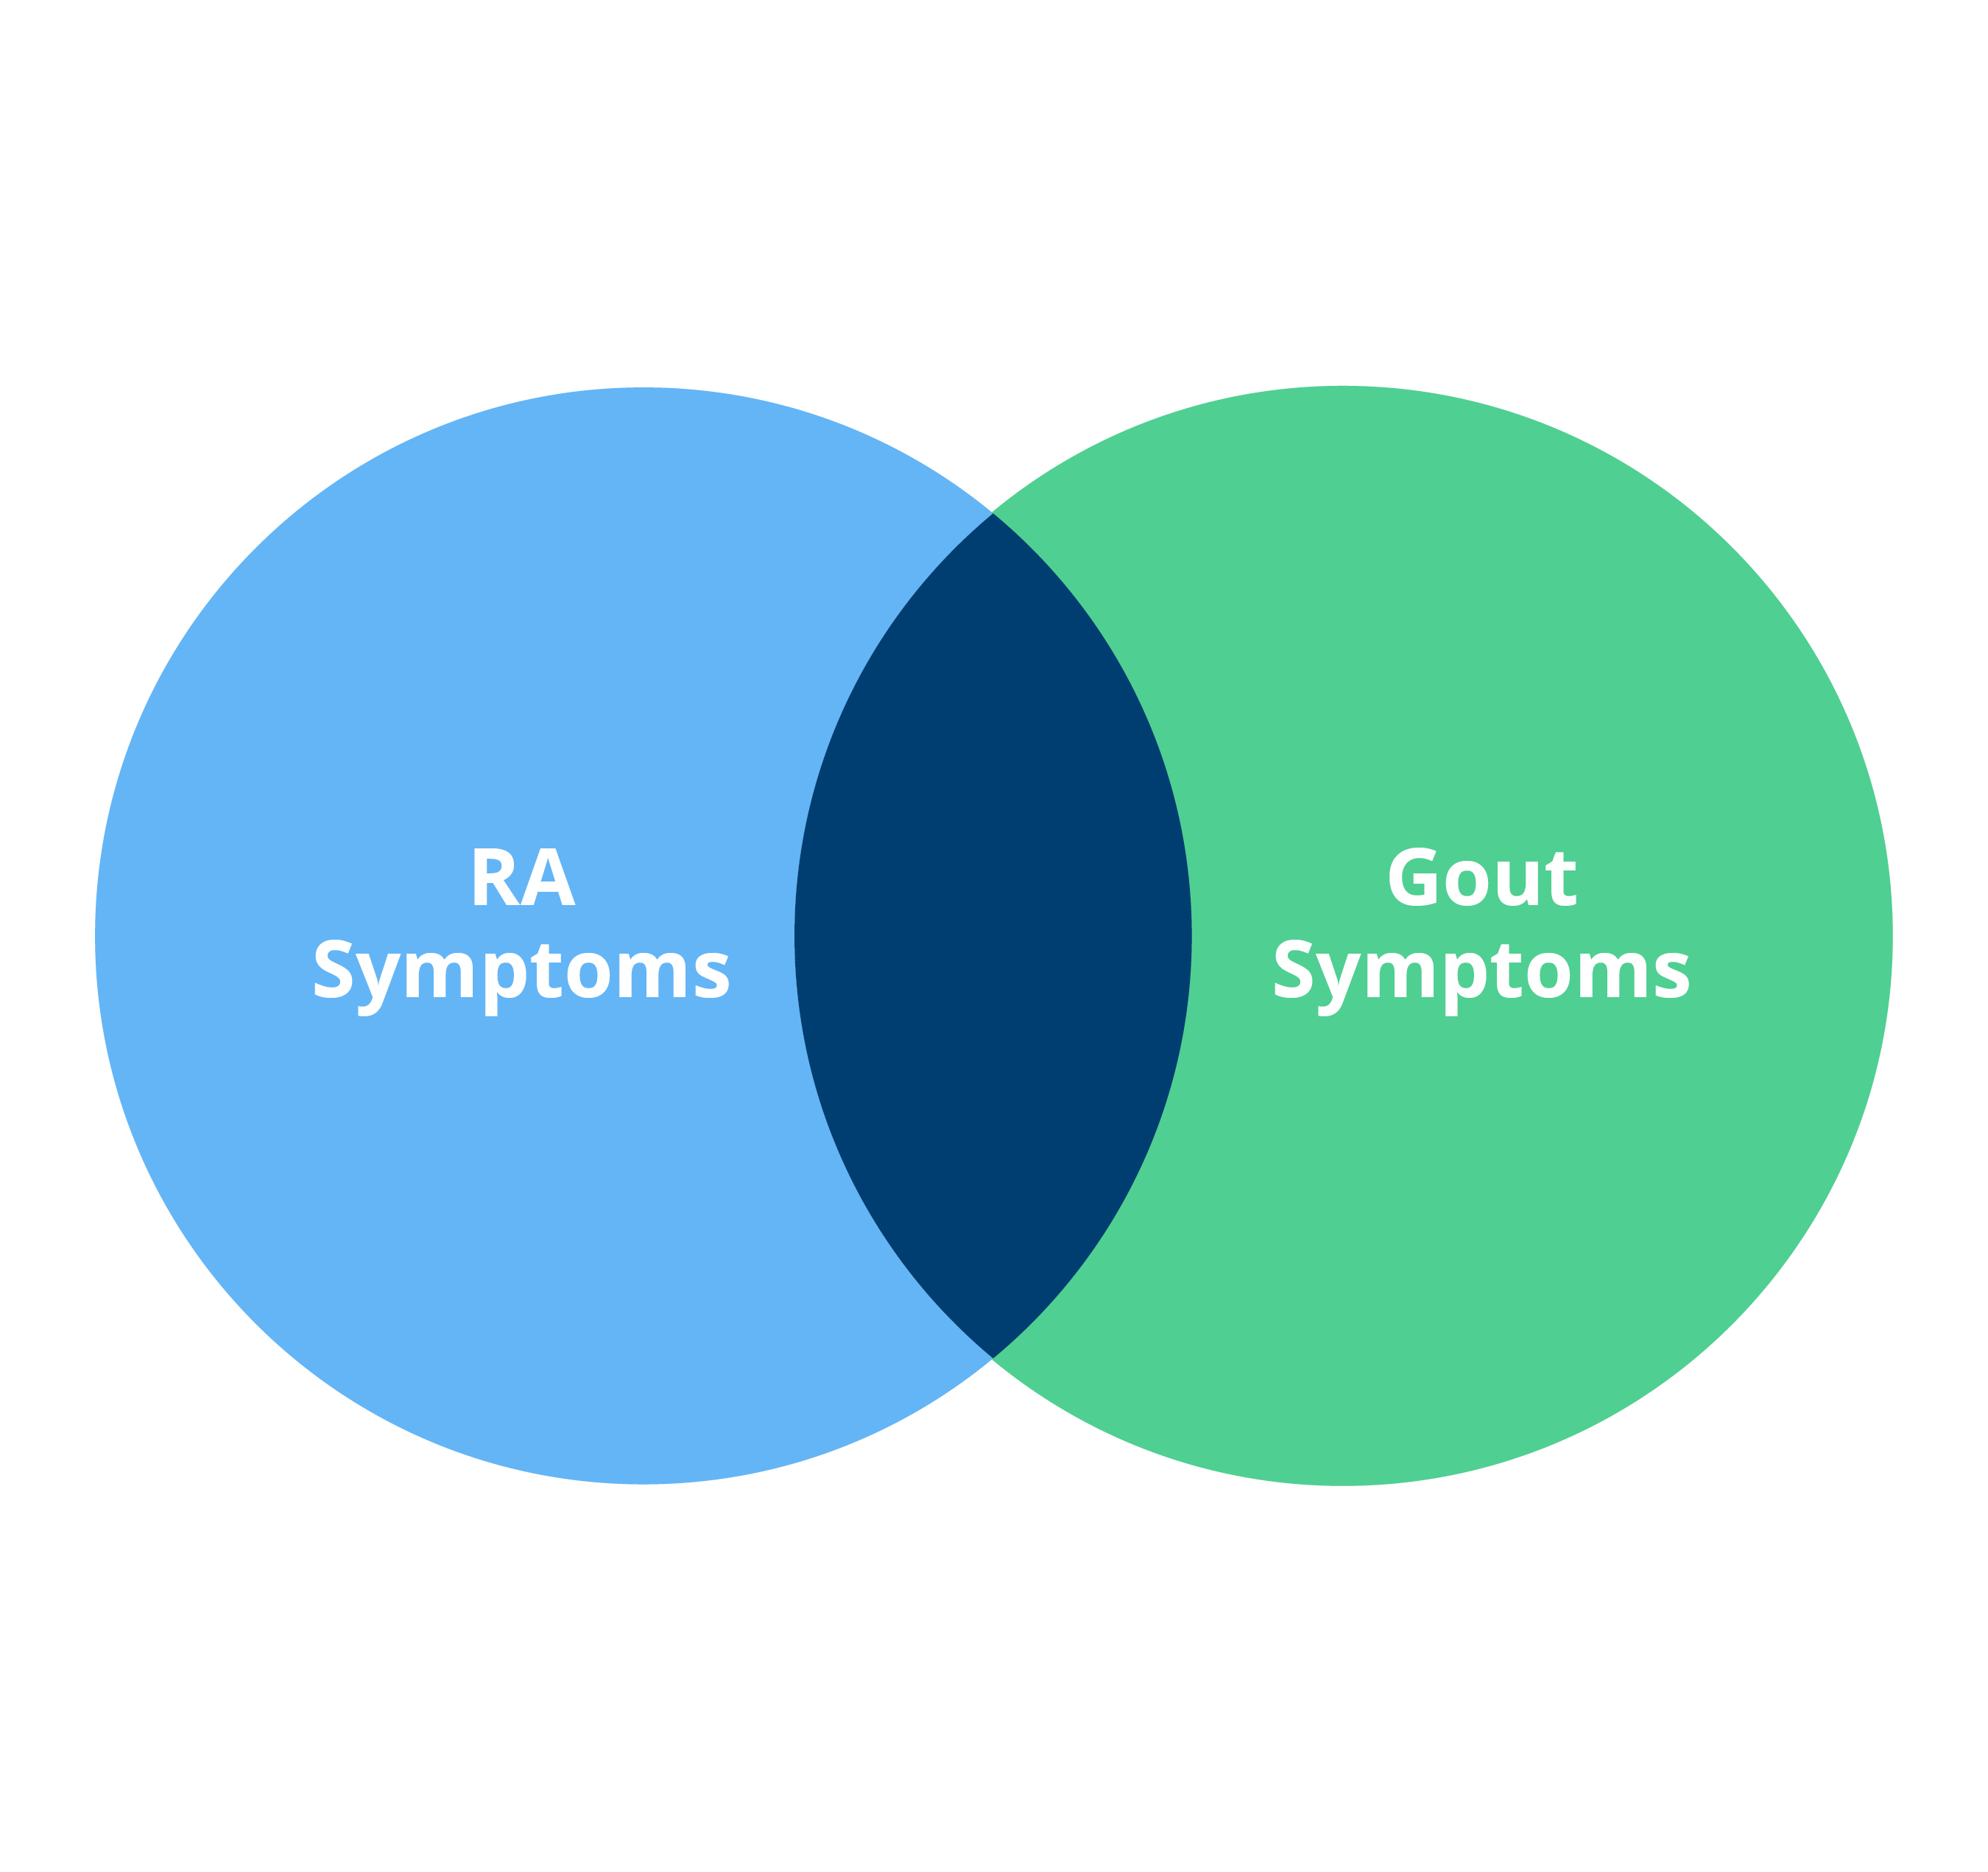 uric acid blood assay causes of increased production of uric acid healing diet for gout